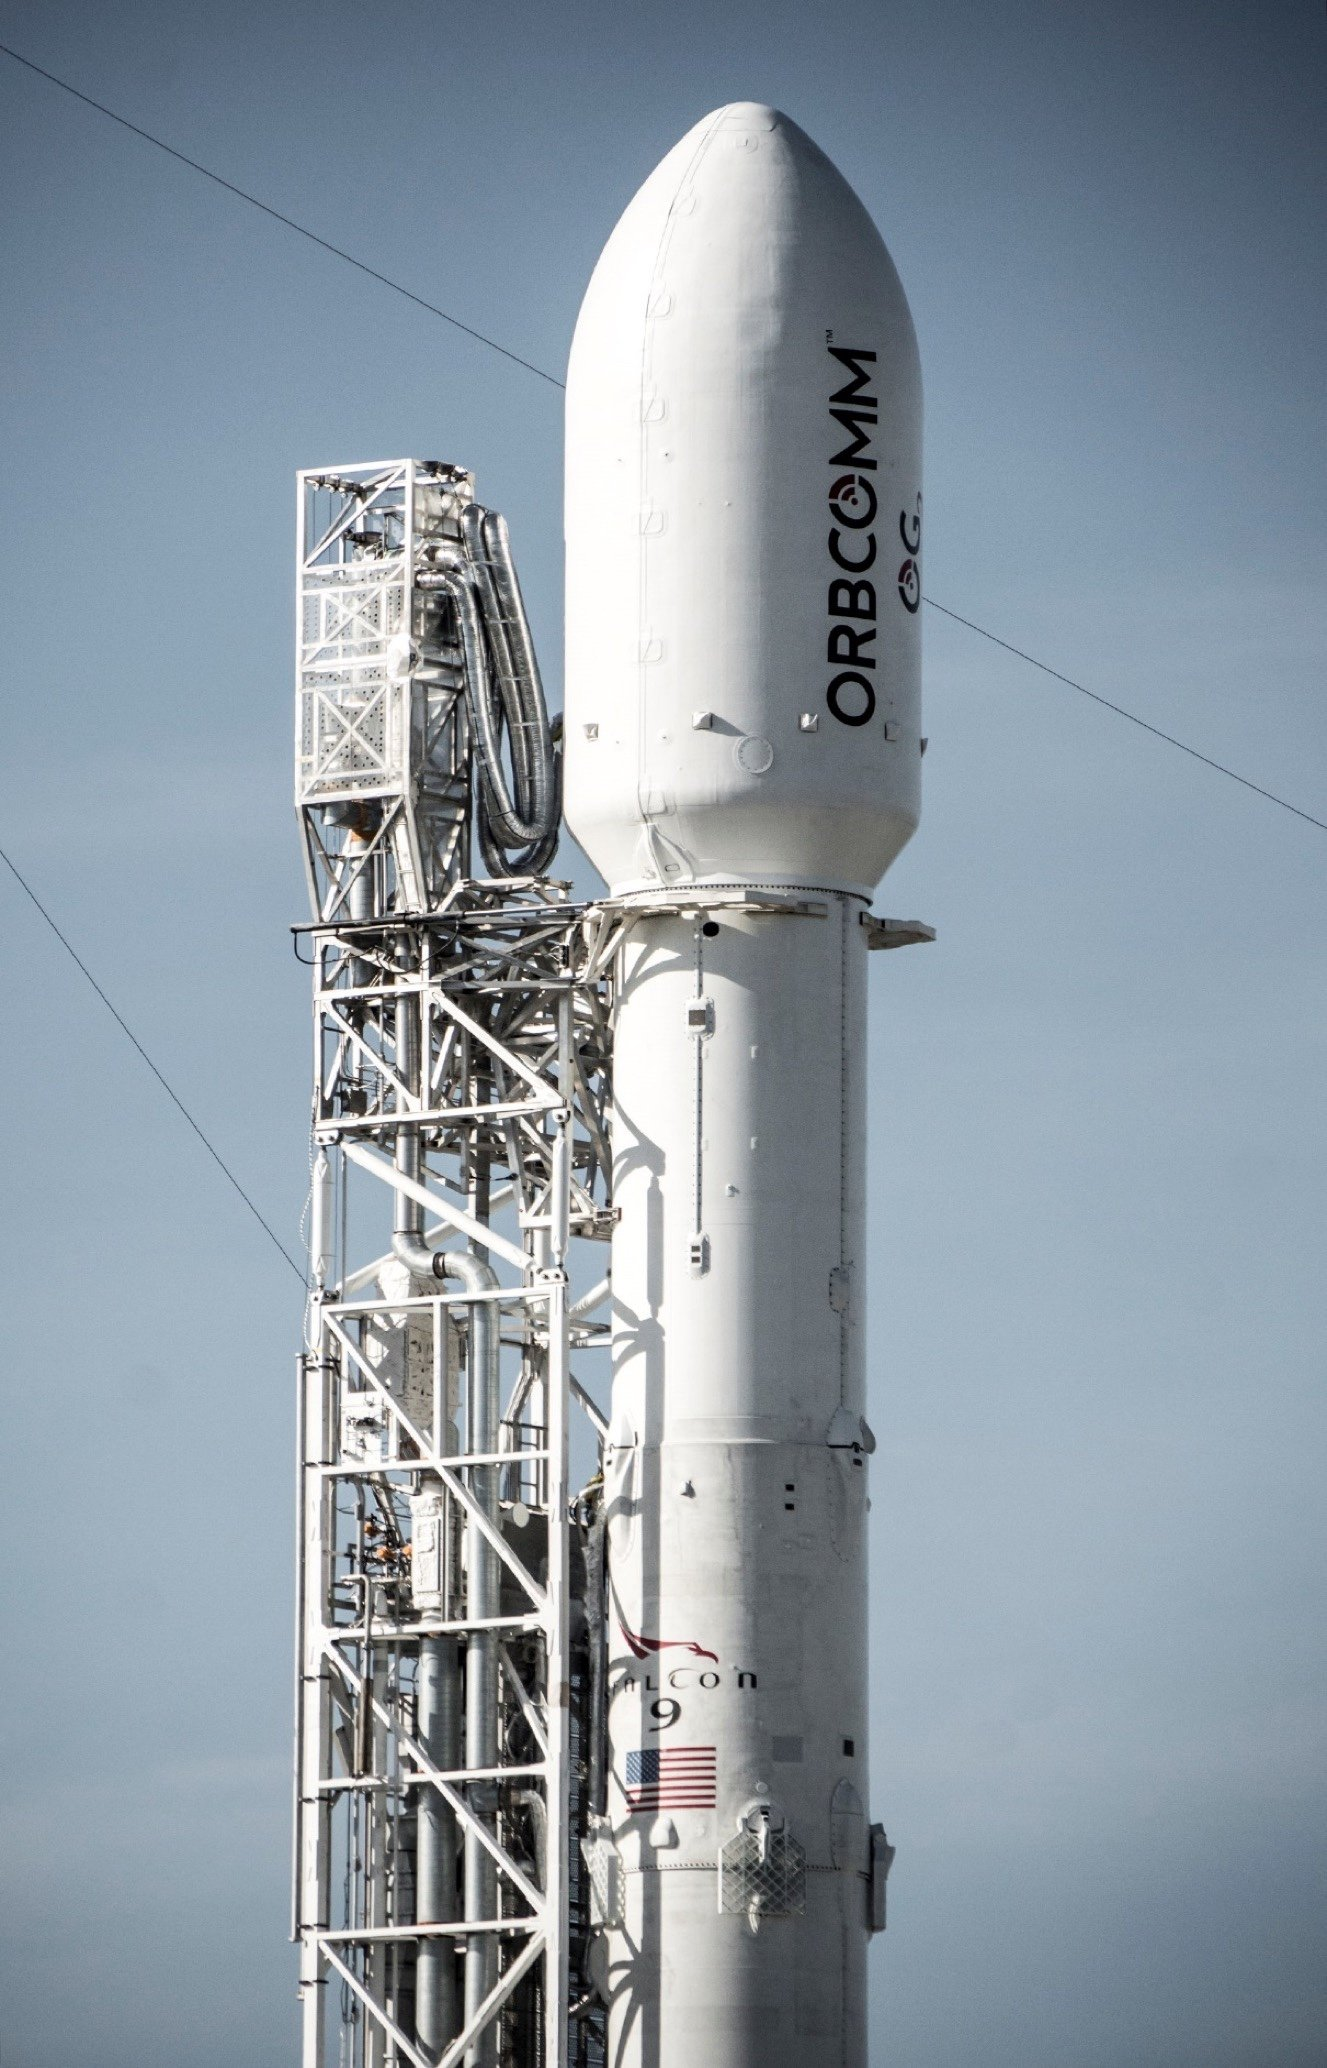 SpaceX on Launchpad